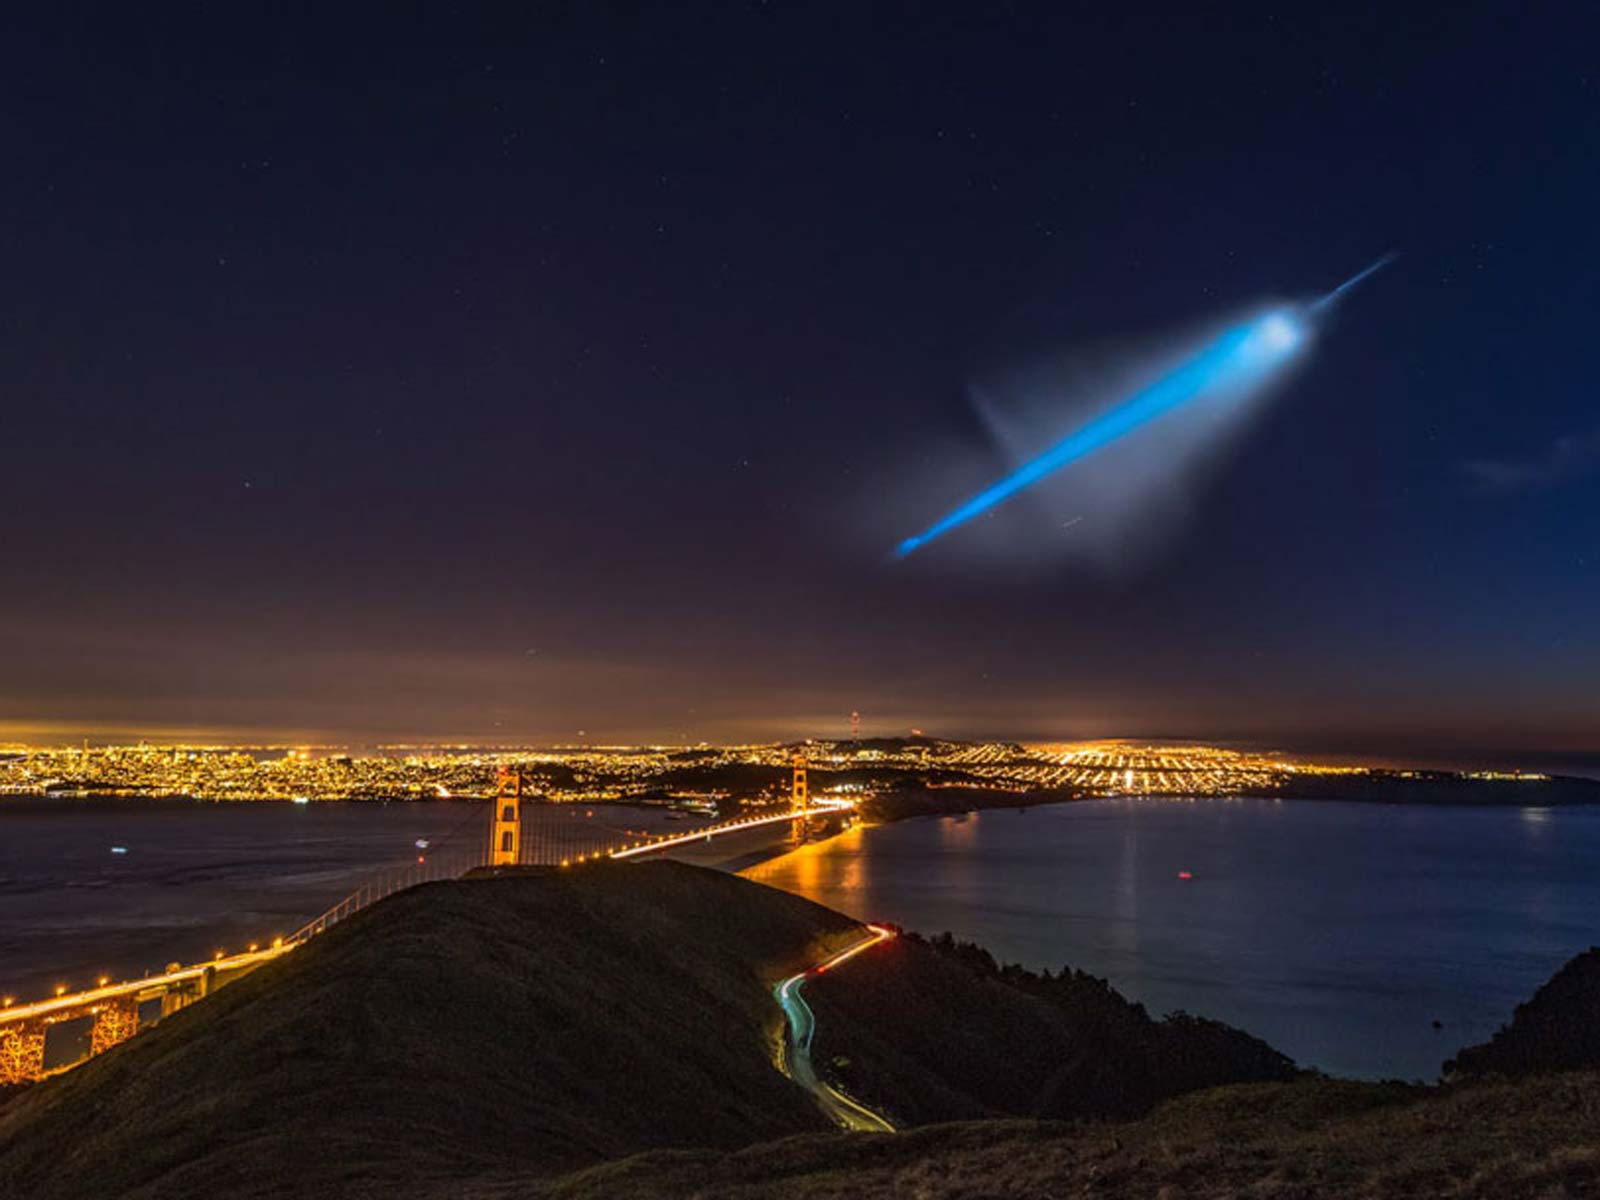 UFO Over San Francisco, or Not? | Space Wallpaper